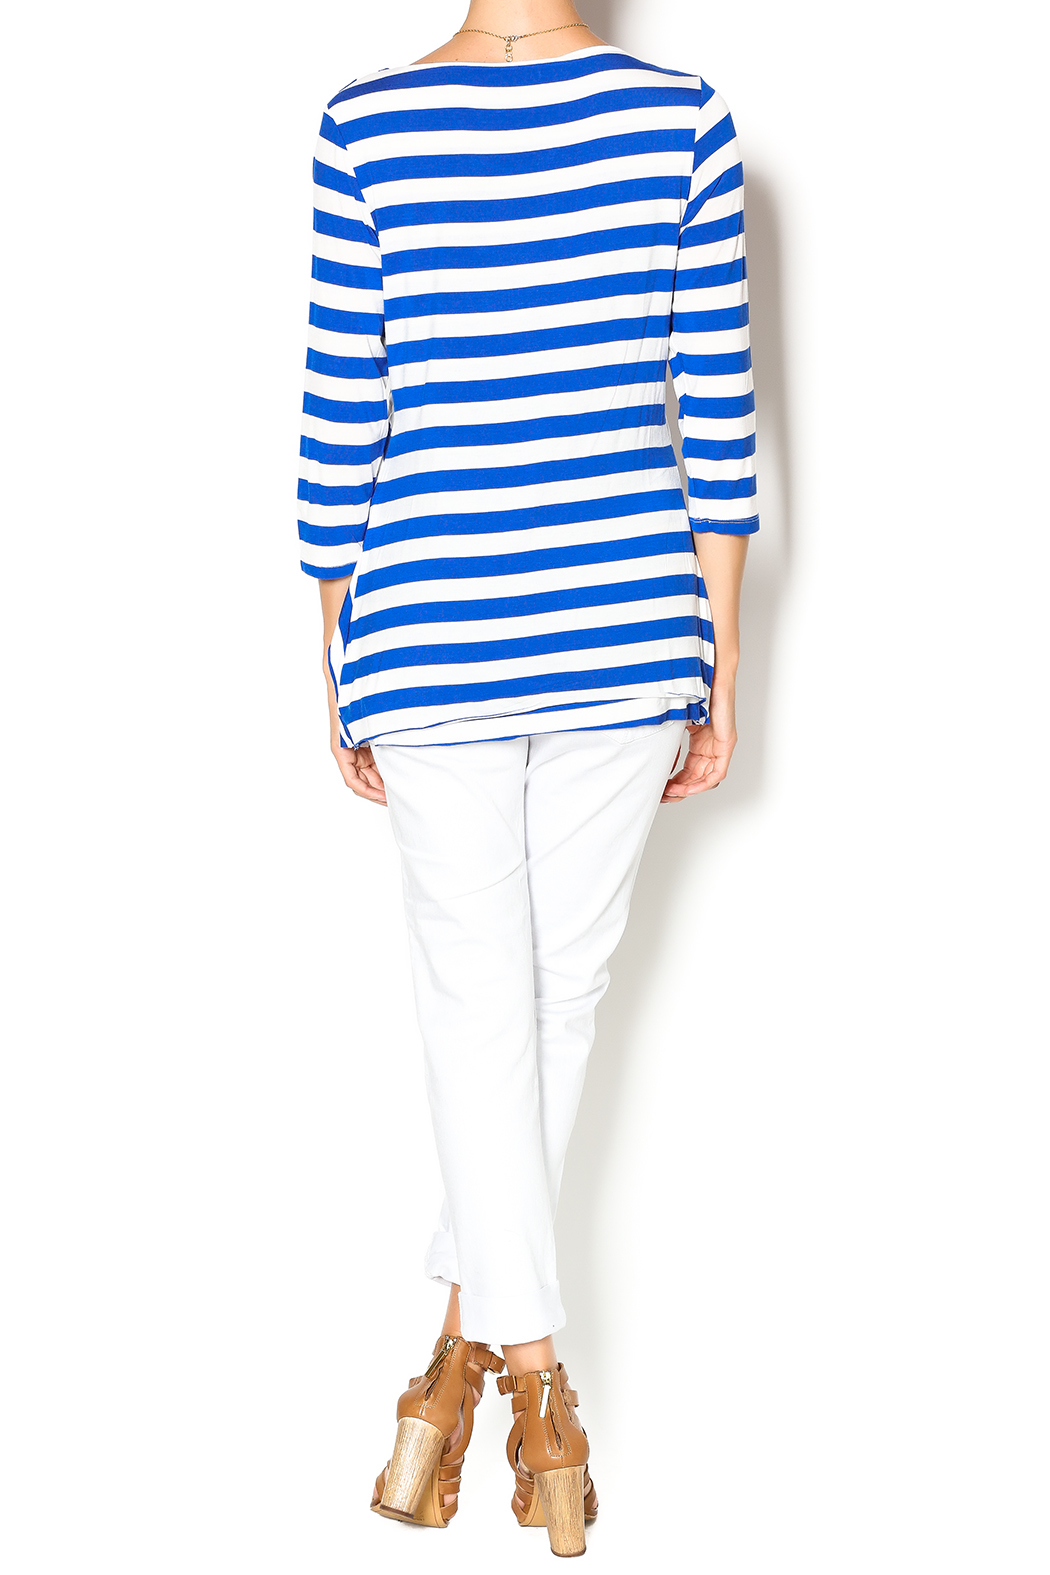 Vecceli Italy Striped Tunic - Side Cropped Image